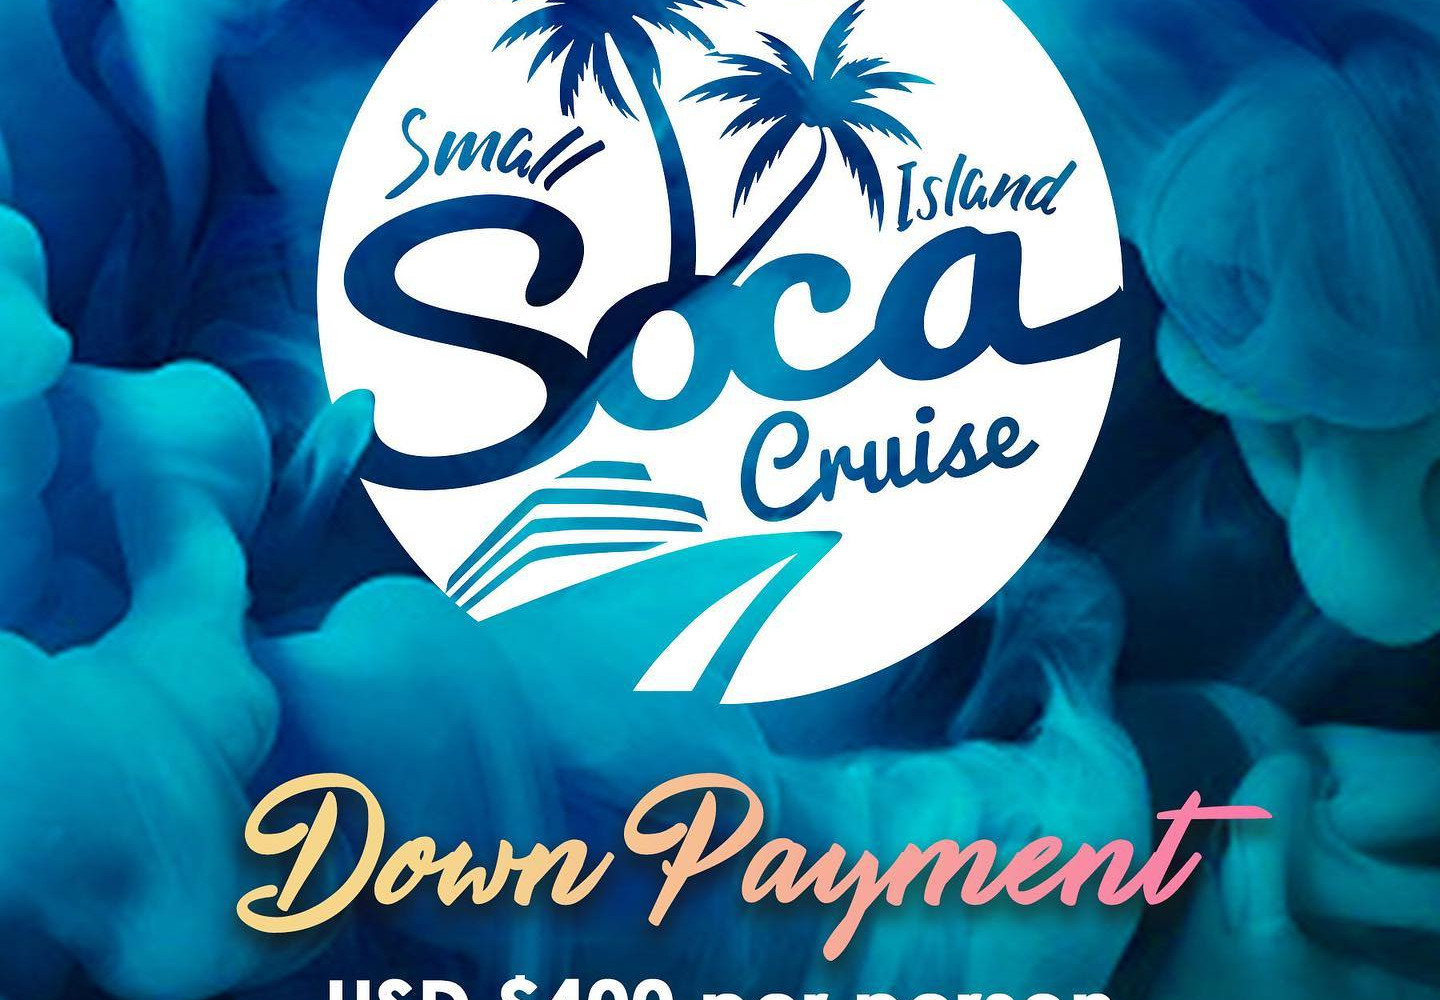 soca cruise down payment.jpg